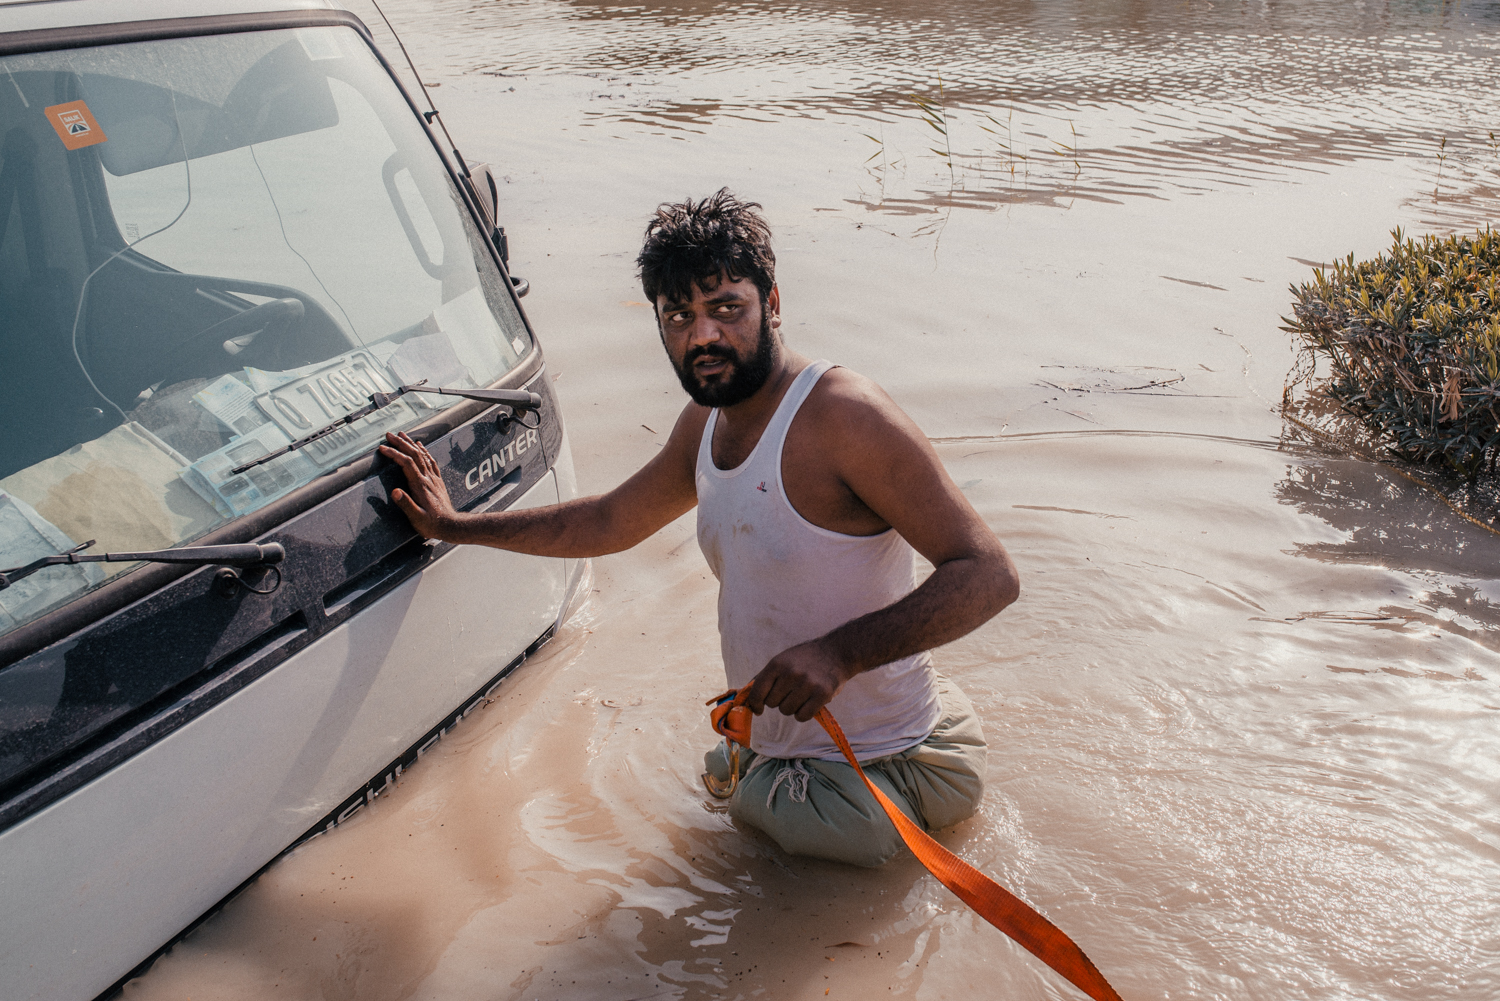 A man attempts to rescue his truck after heavy downpours flooded the street it was parked on in Dubai.